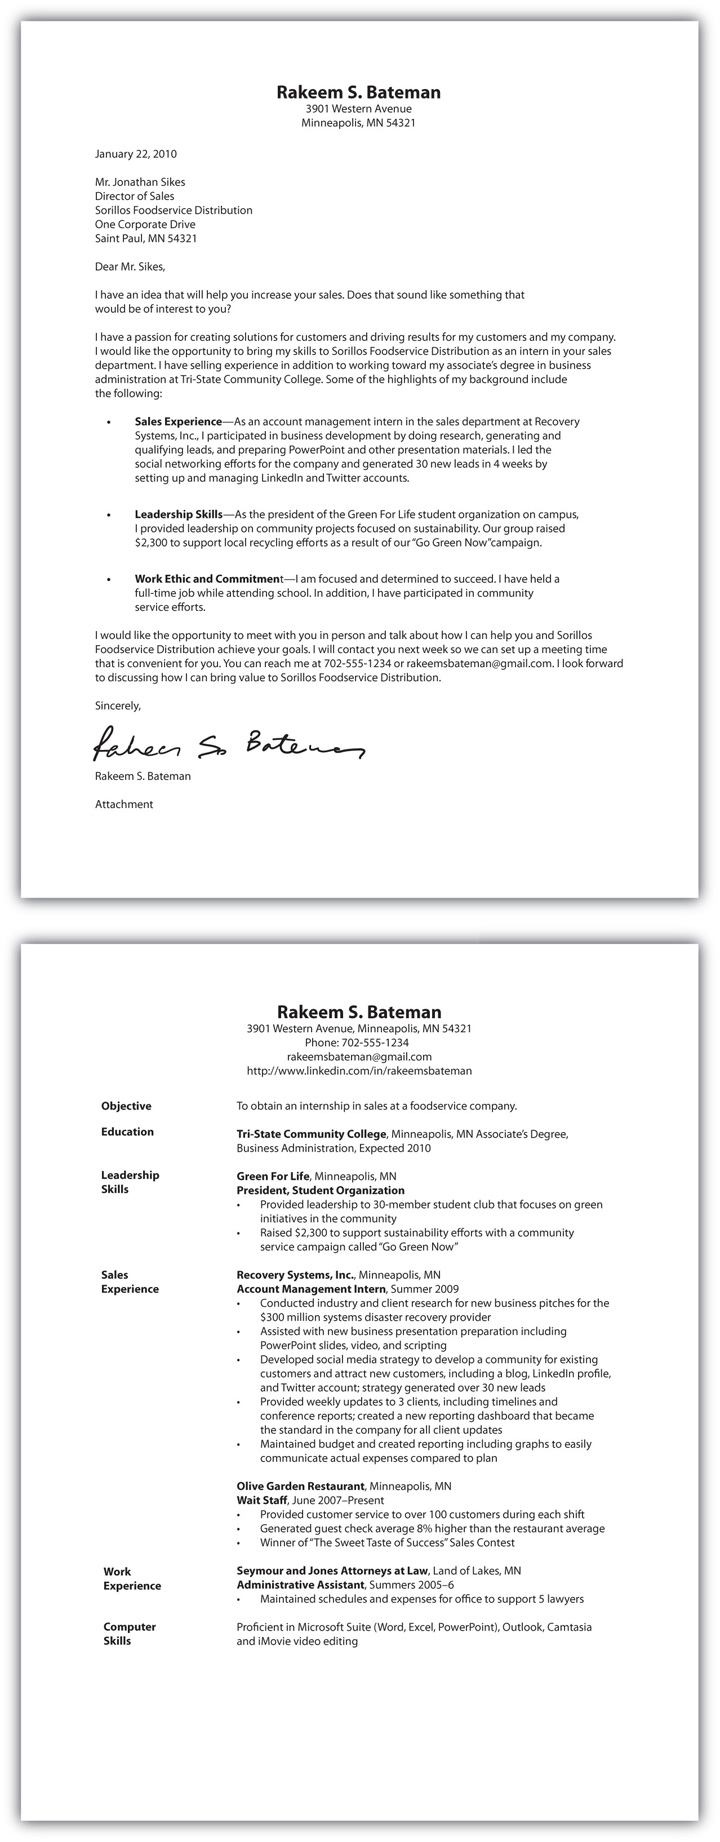 Leading Professional Assistant Store Manager Cover Letter Examples     Big Interview Resume And Cover Letter Assignment Sample Cover Letter And Resume       Macquarie University Professional Portfolio Cover